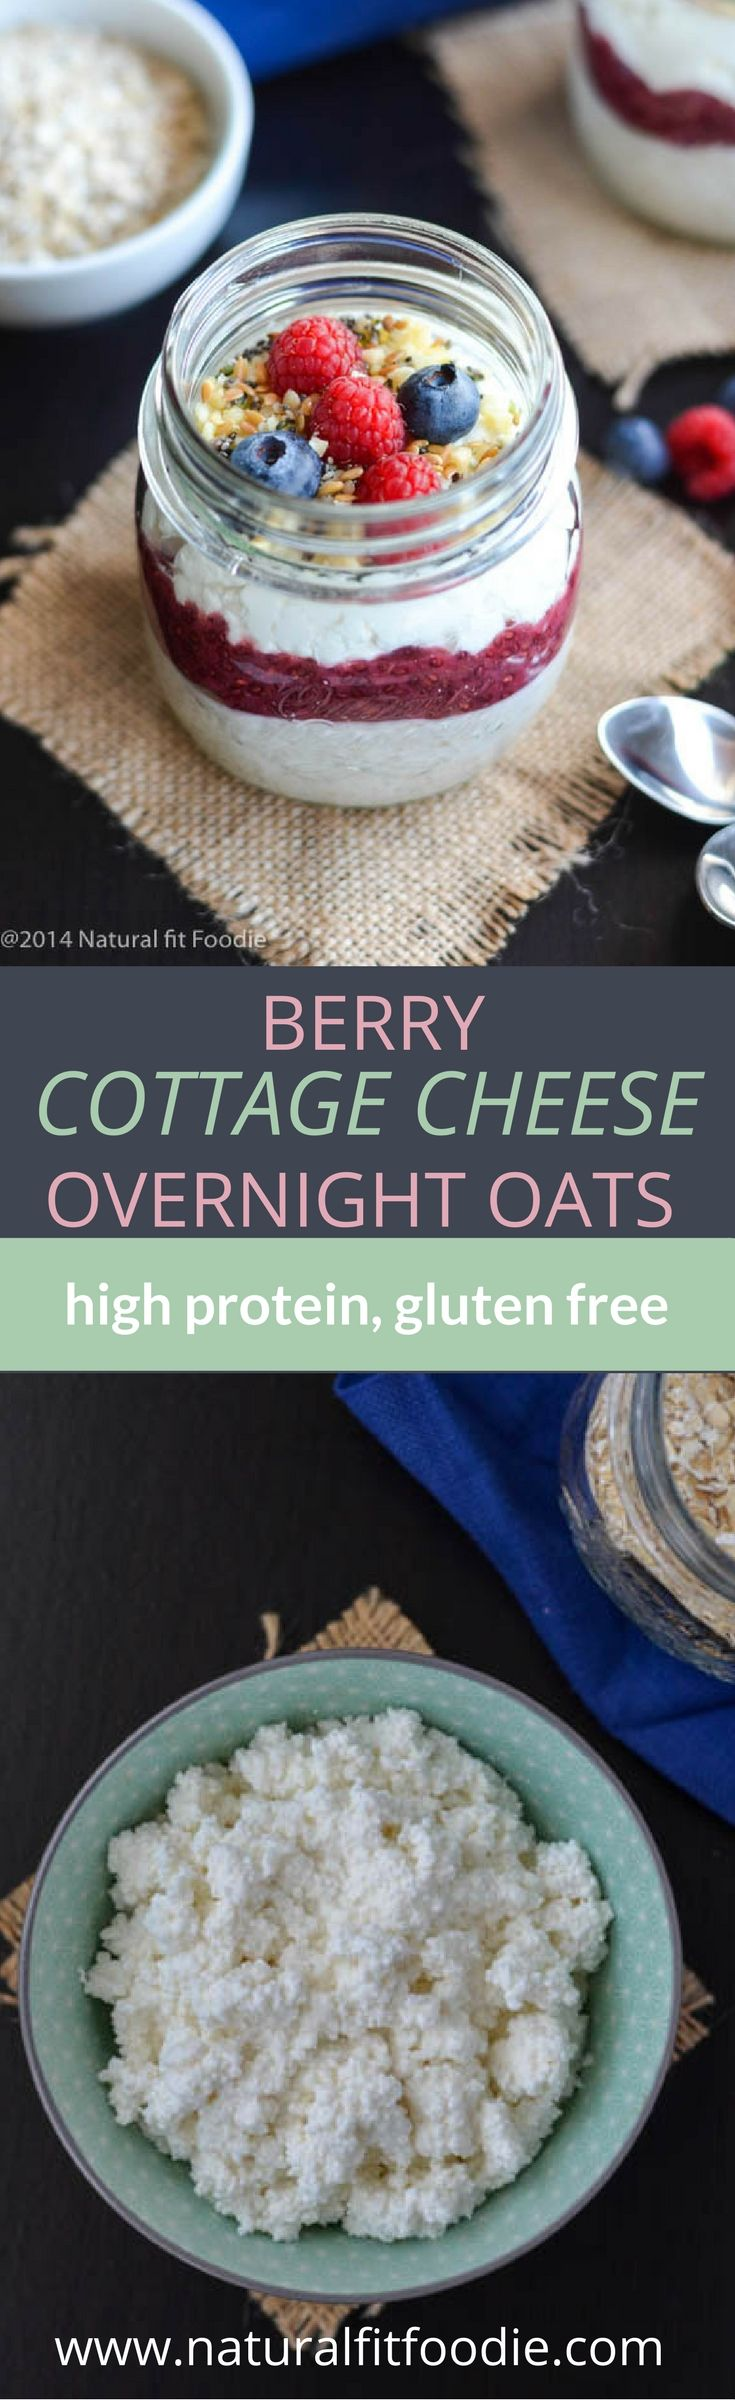 Berry cottage cheese overnight oats is an easy make ahead